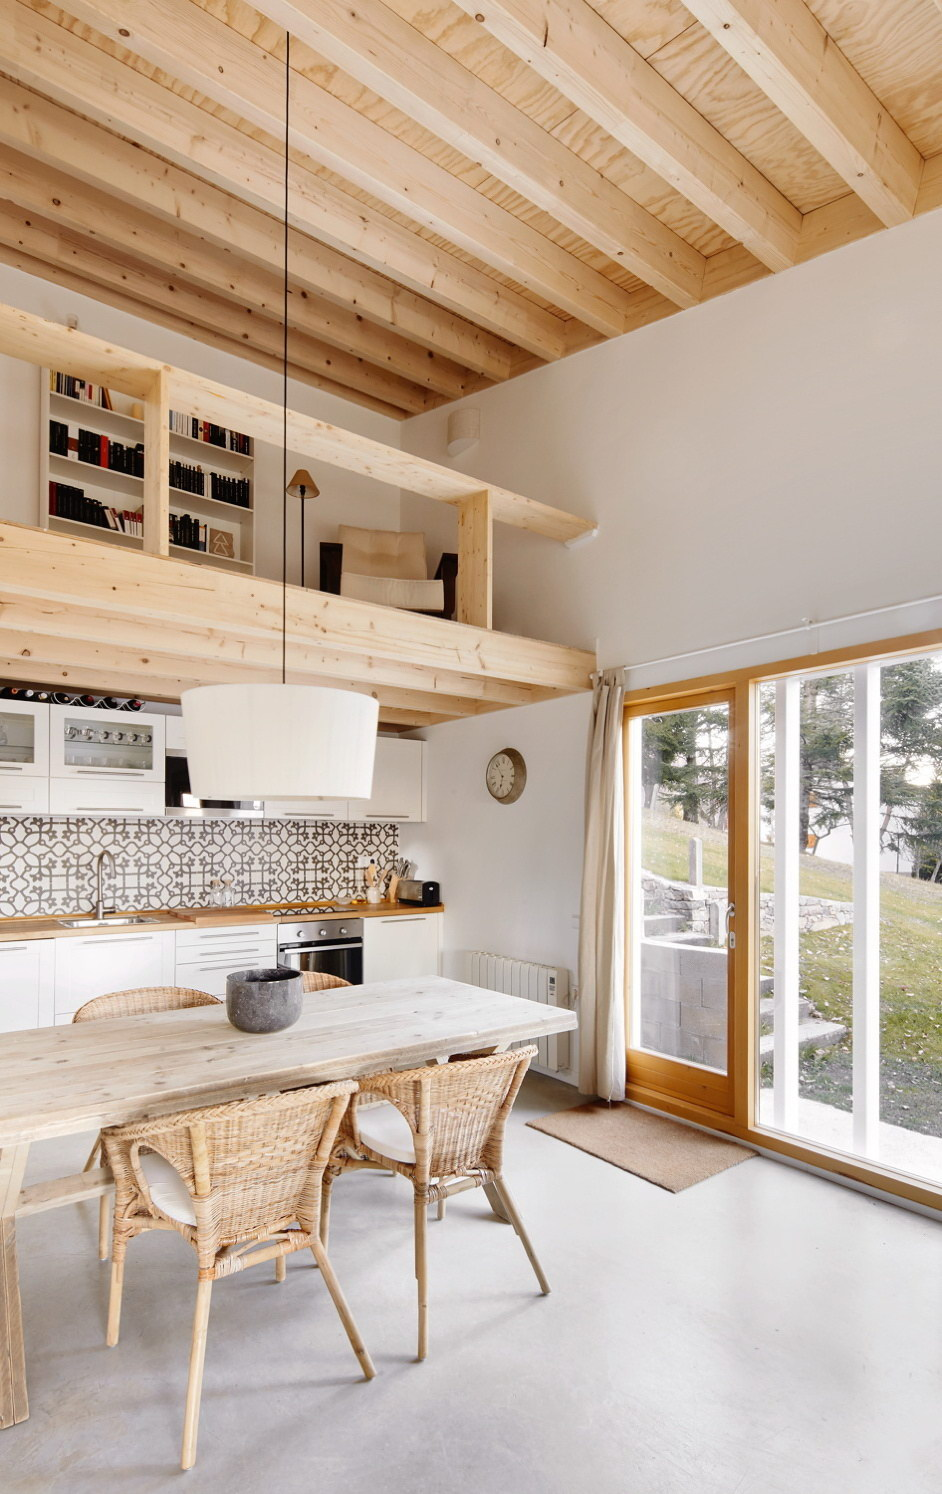 Prefab Cottage in the Pyrenees by Mogas Arquitectes